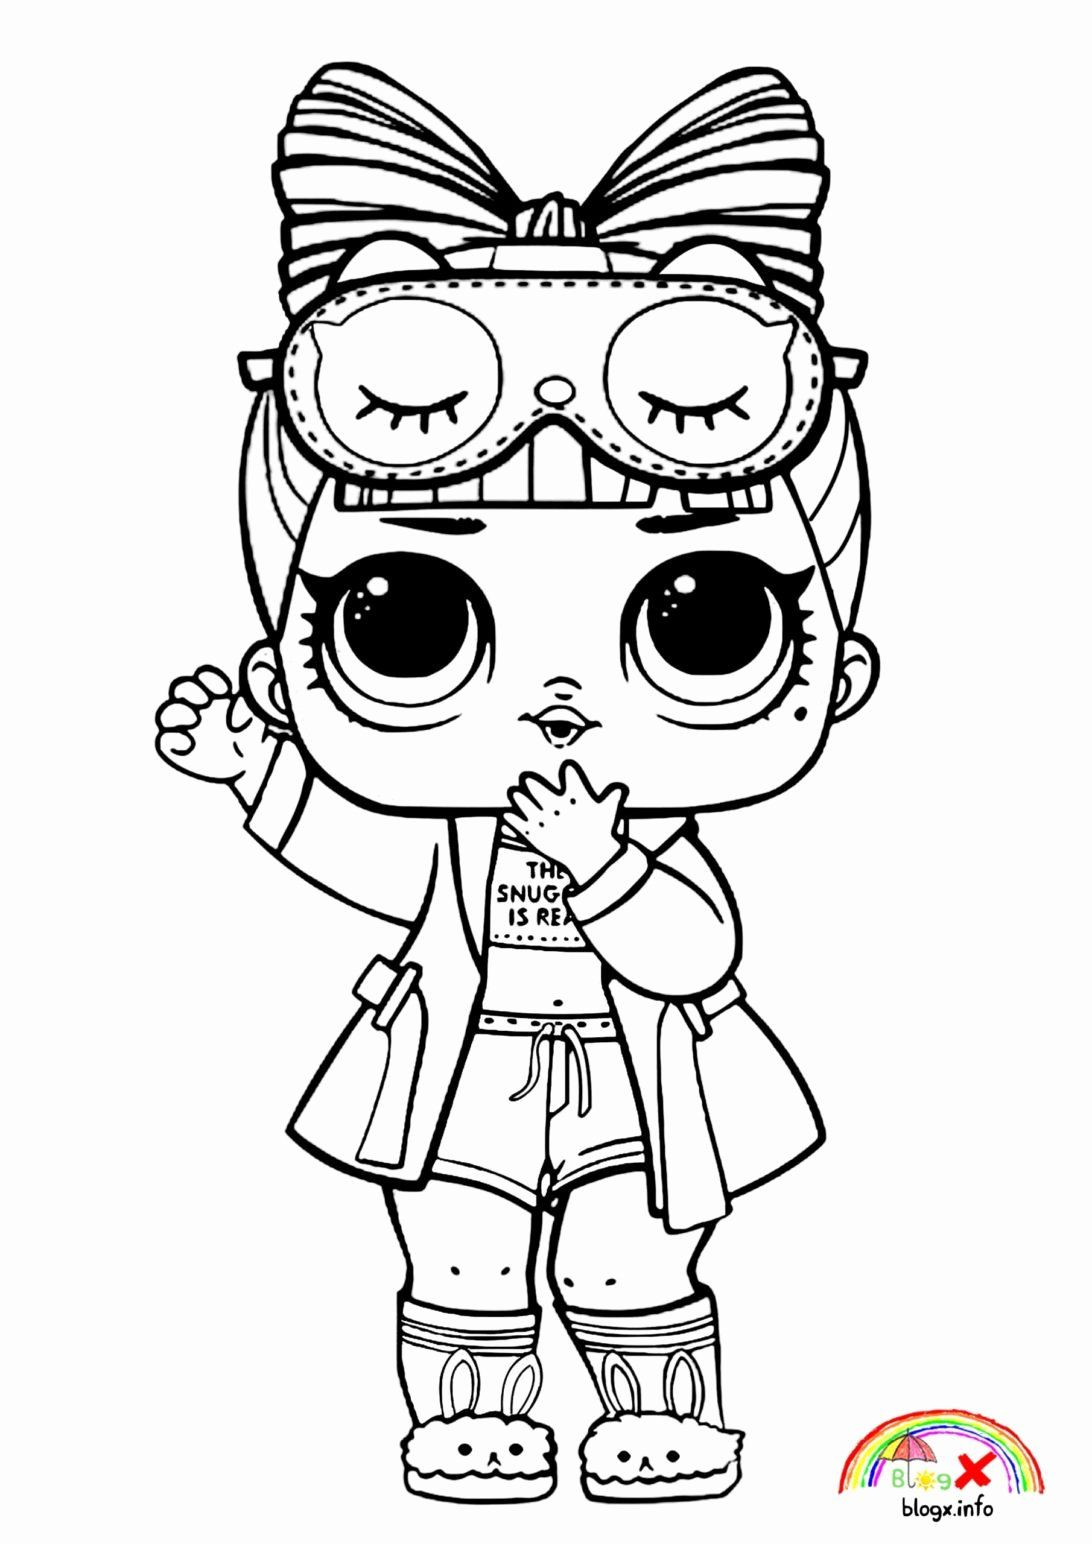 Spring Coloring Pages Preschool Lovely Coloring Pages Coloring Outstanding Kawaii Sheets Cute Lol Dolls Animal Coloring Pages Cute Coloring Pages